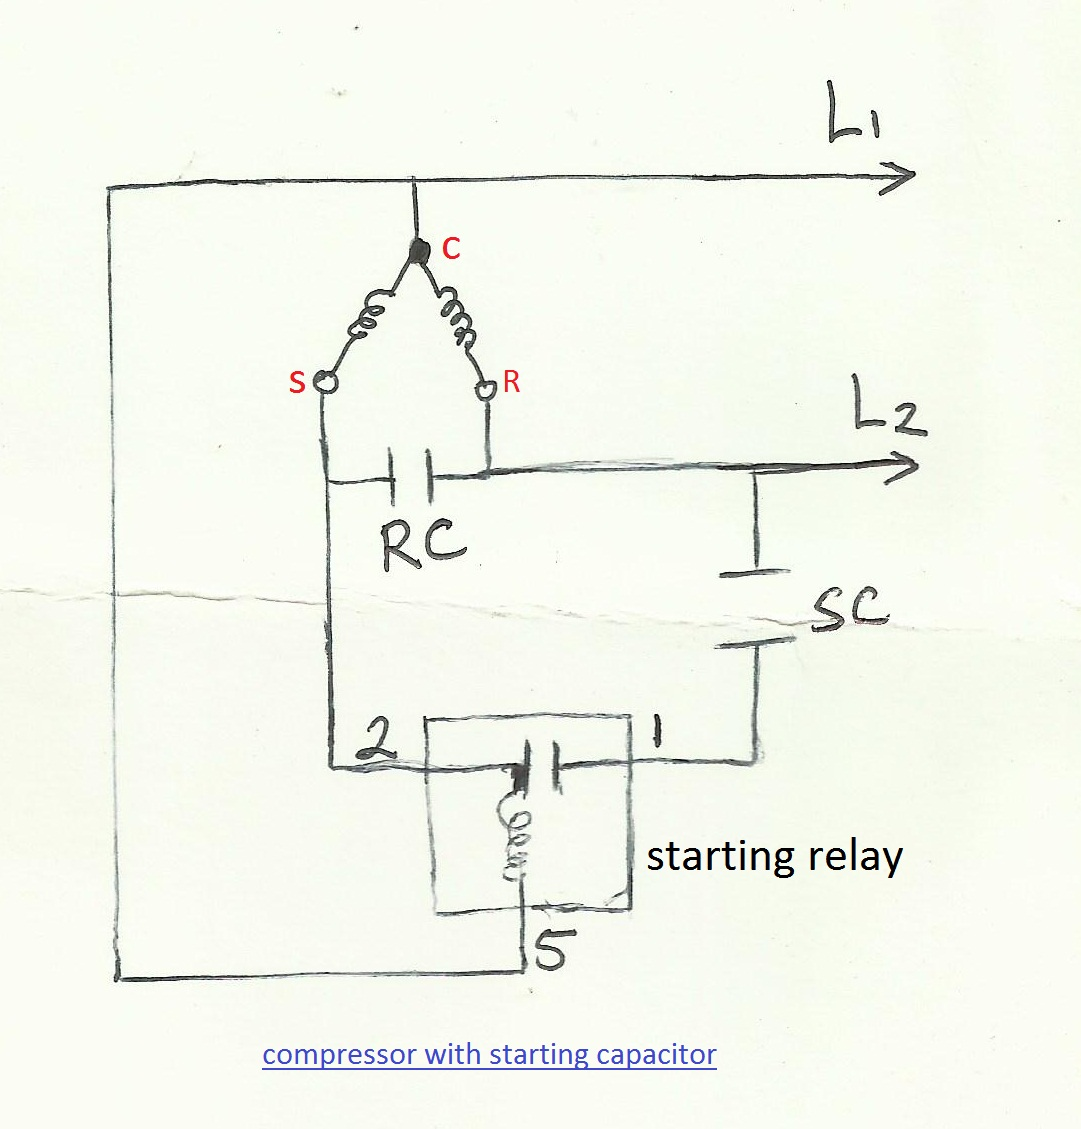 Start capacitor wiring diagram for compressor